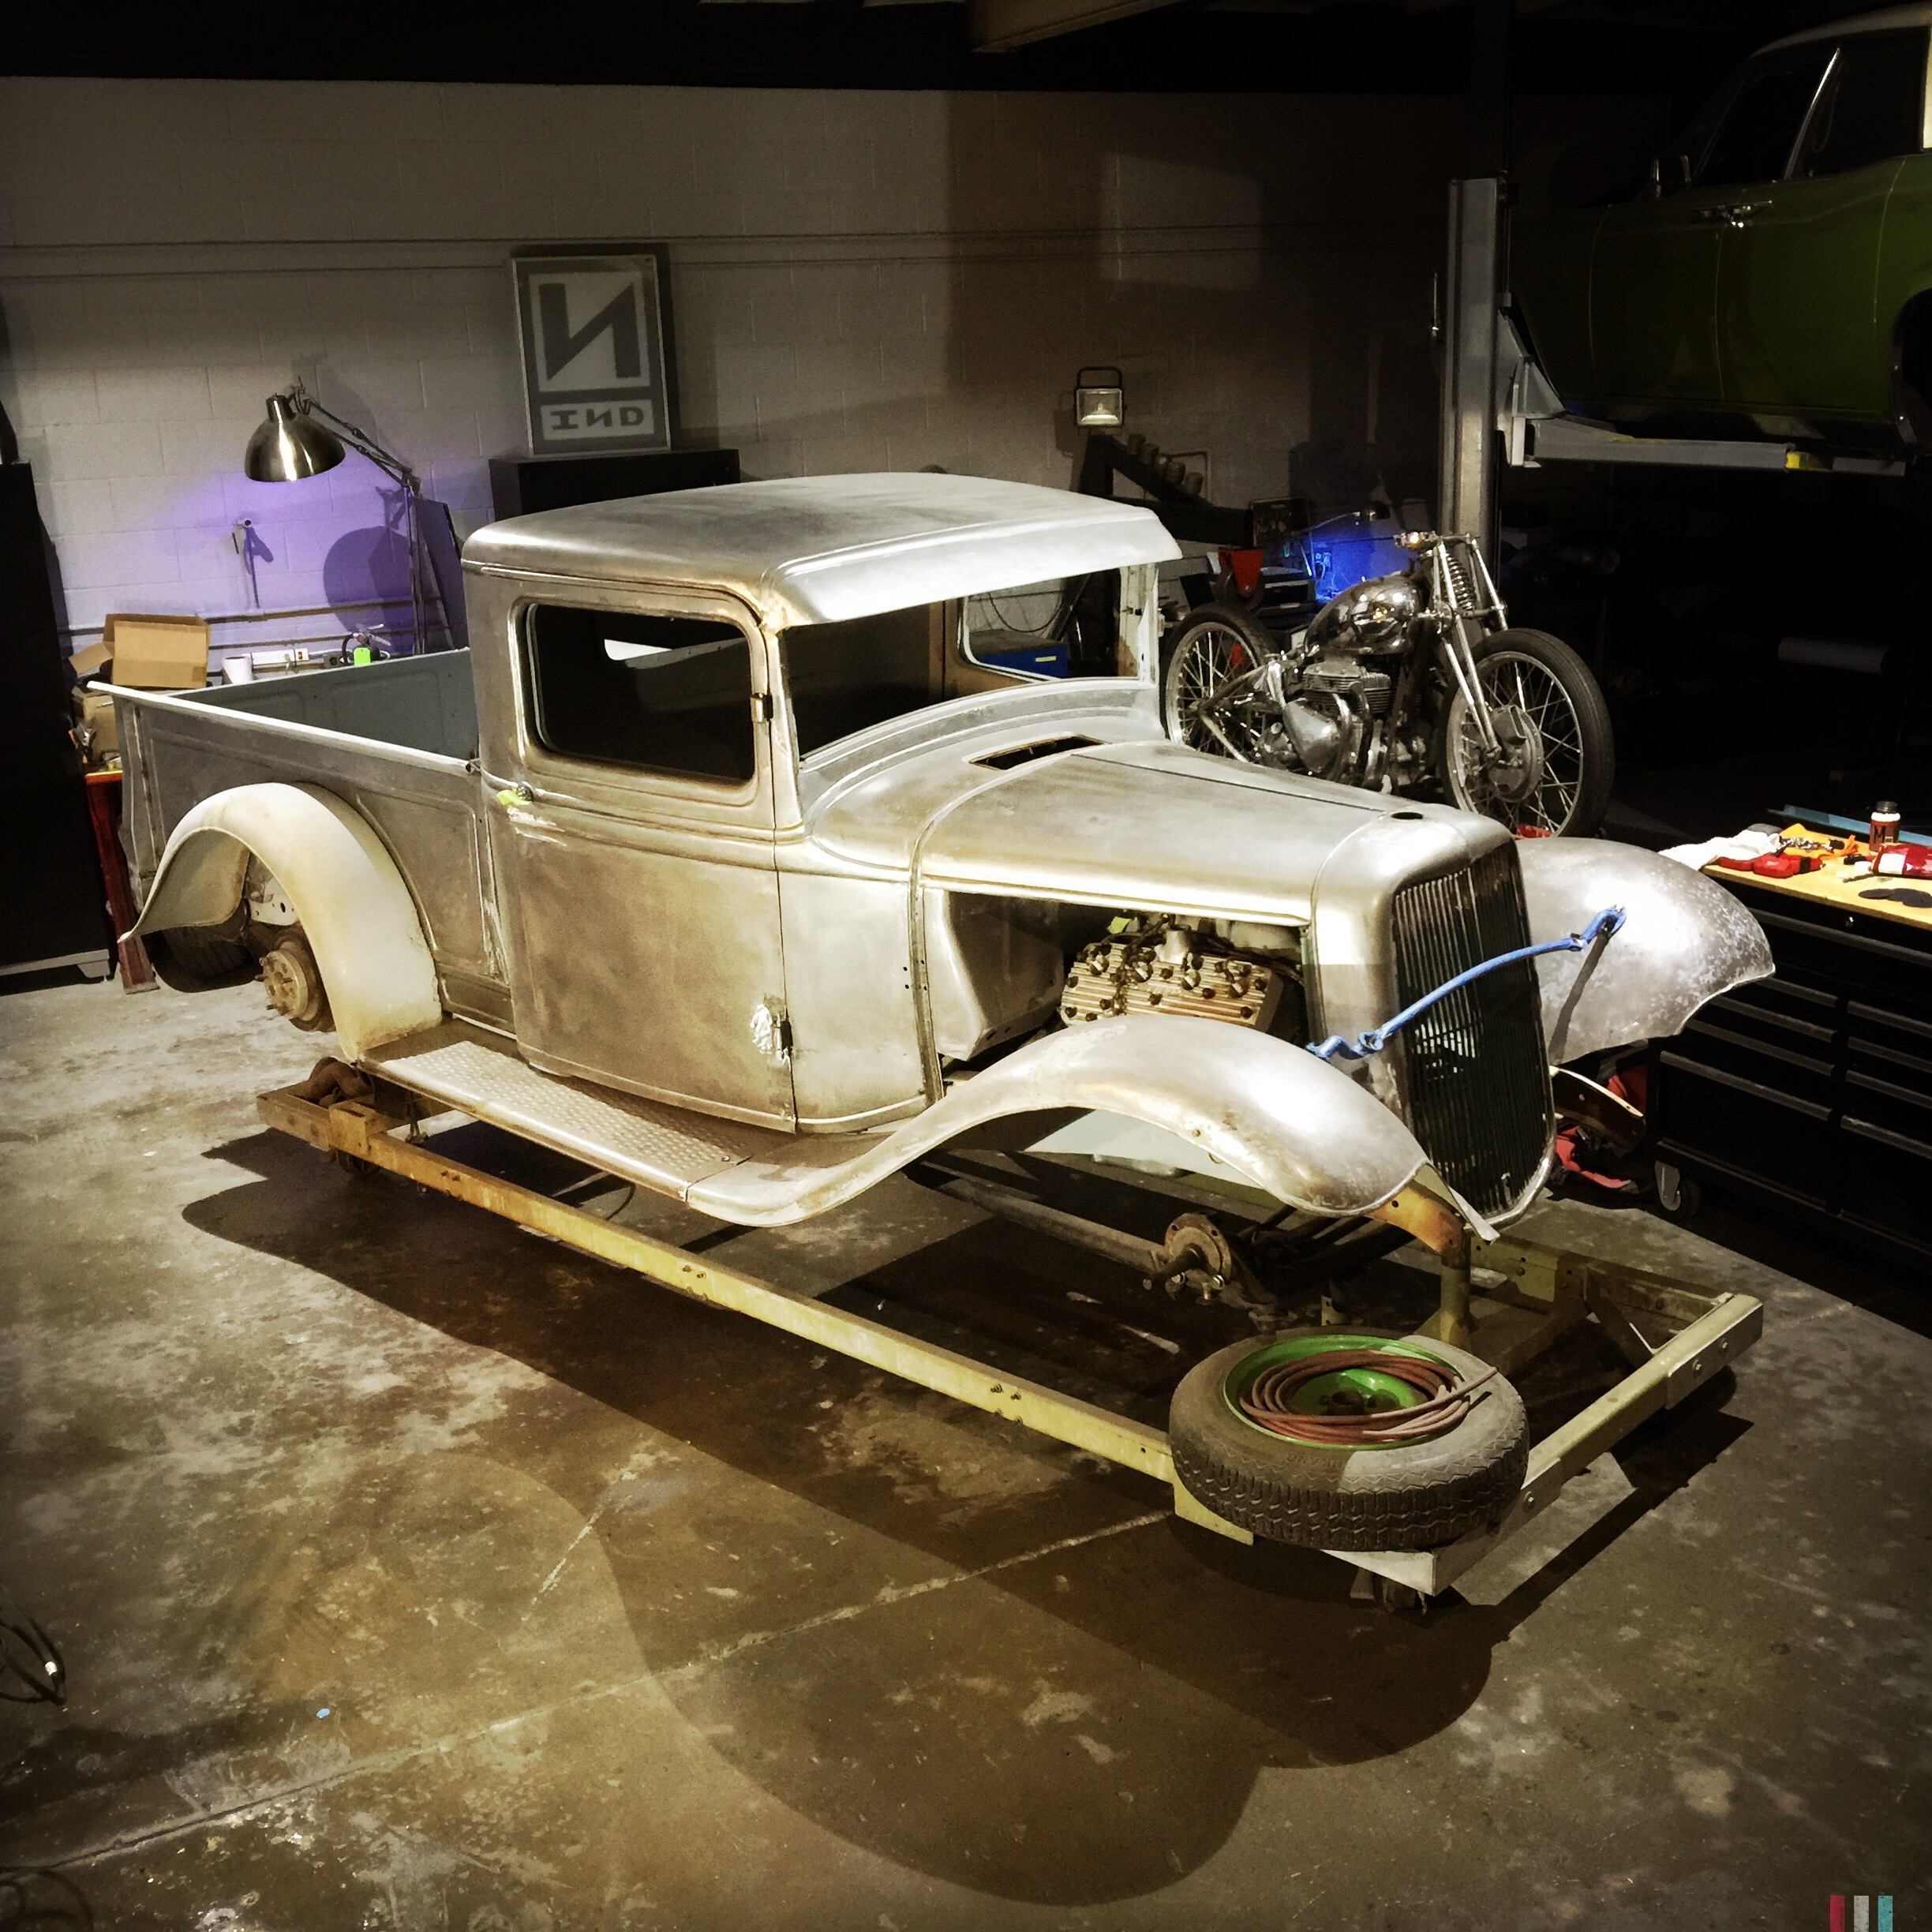 Anaheim Rod and Custom Metal Work 10.jpg